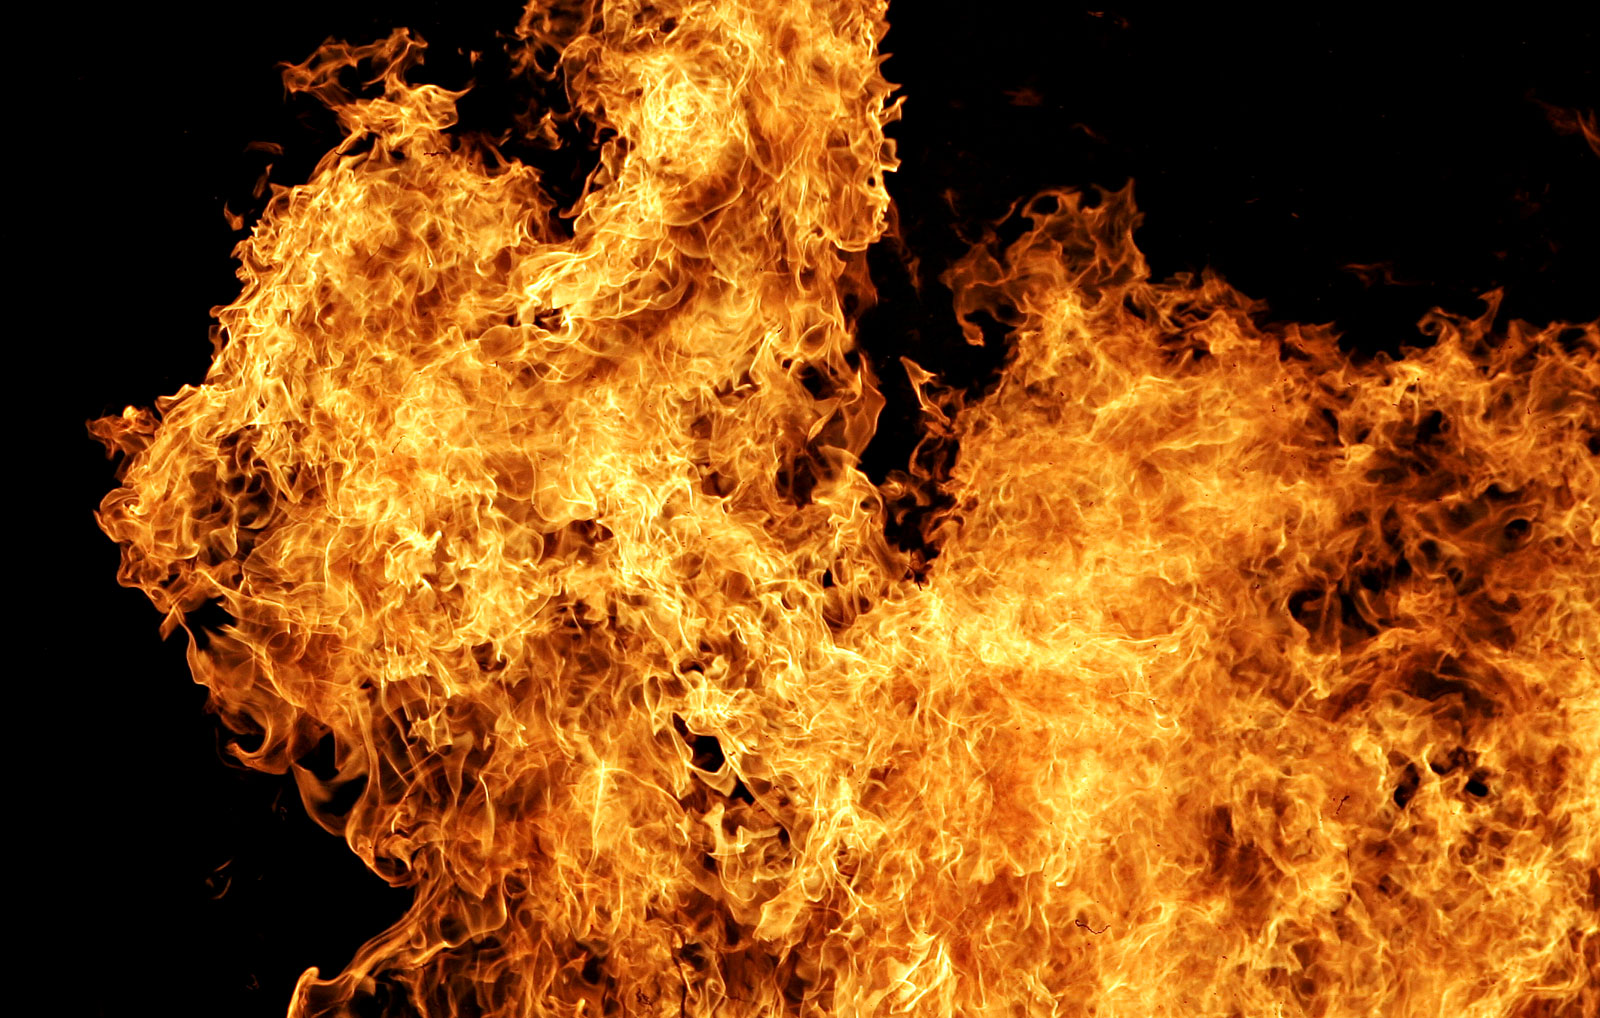 BREAKING: 4 displaced after house fire in Clay